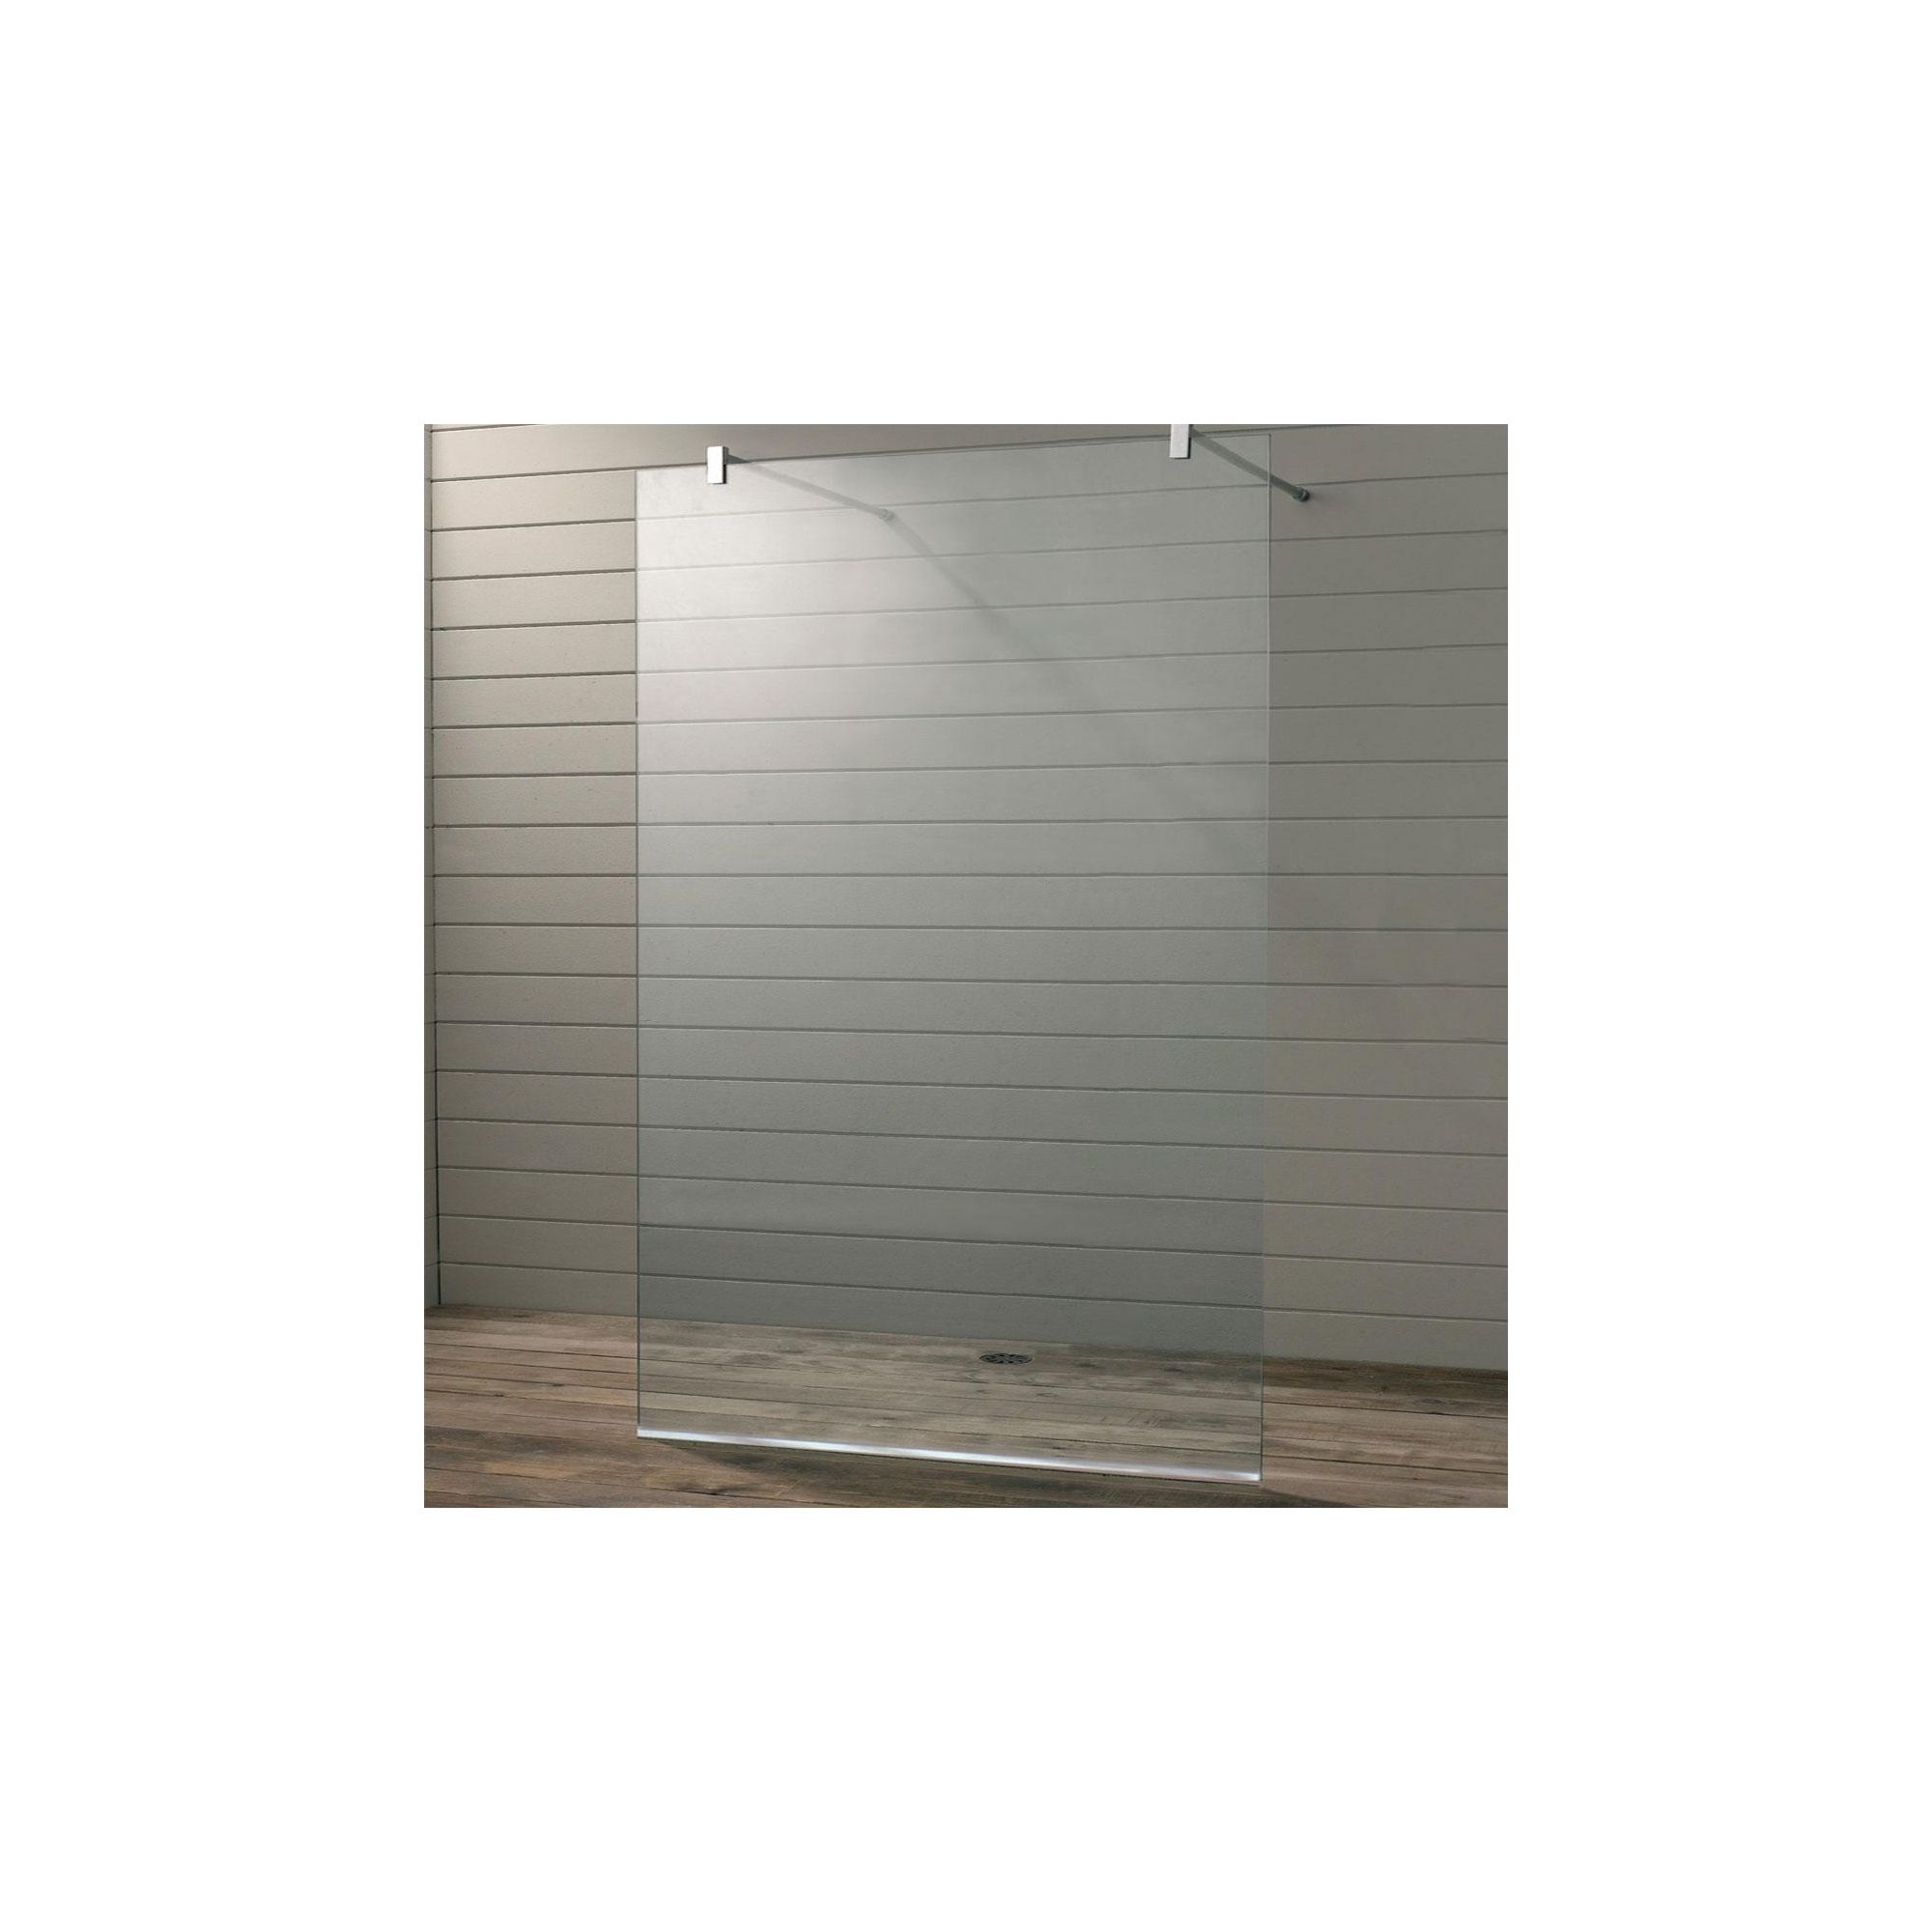 Duchy Premium Wet Room Glass Shower Panel, 1200mm x 760mm, 10mm Glass, Low Profile Tray at Tesco Direct